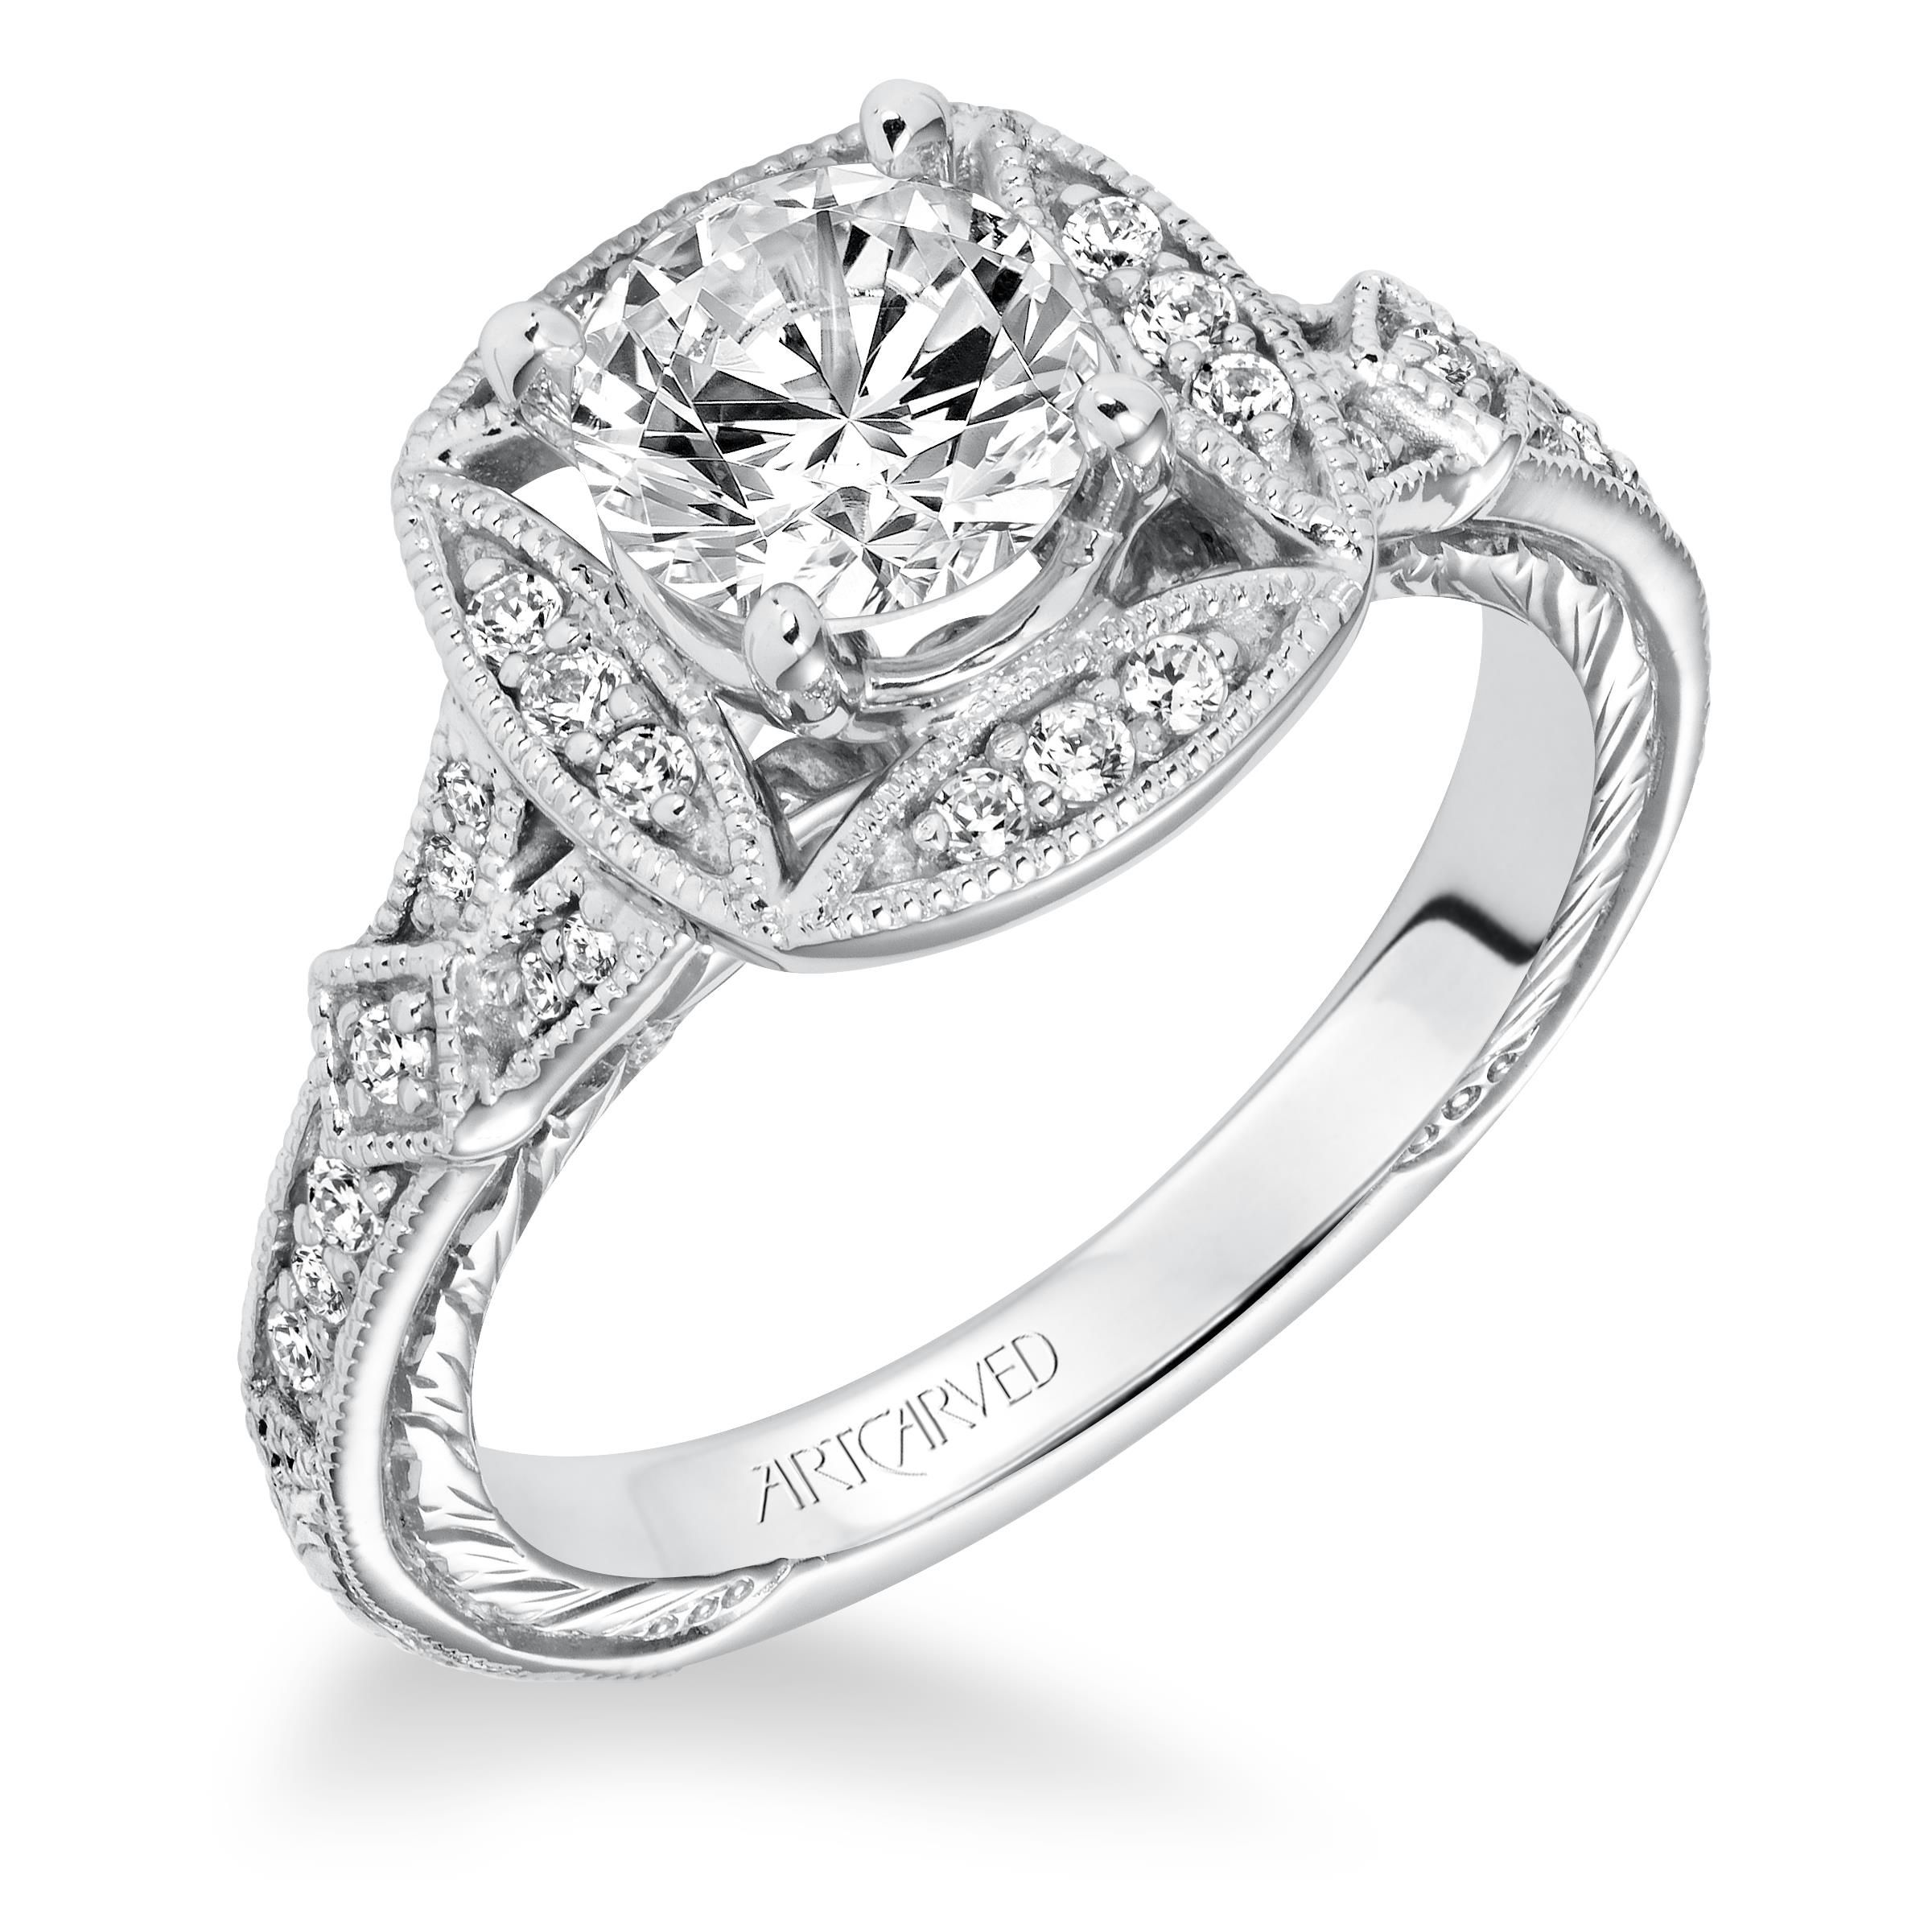 wedding f sku detailed round clarity engagement dgc sidestones rings carat fsi enhanced white ring diamond certified gold itm